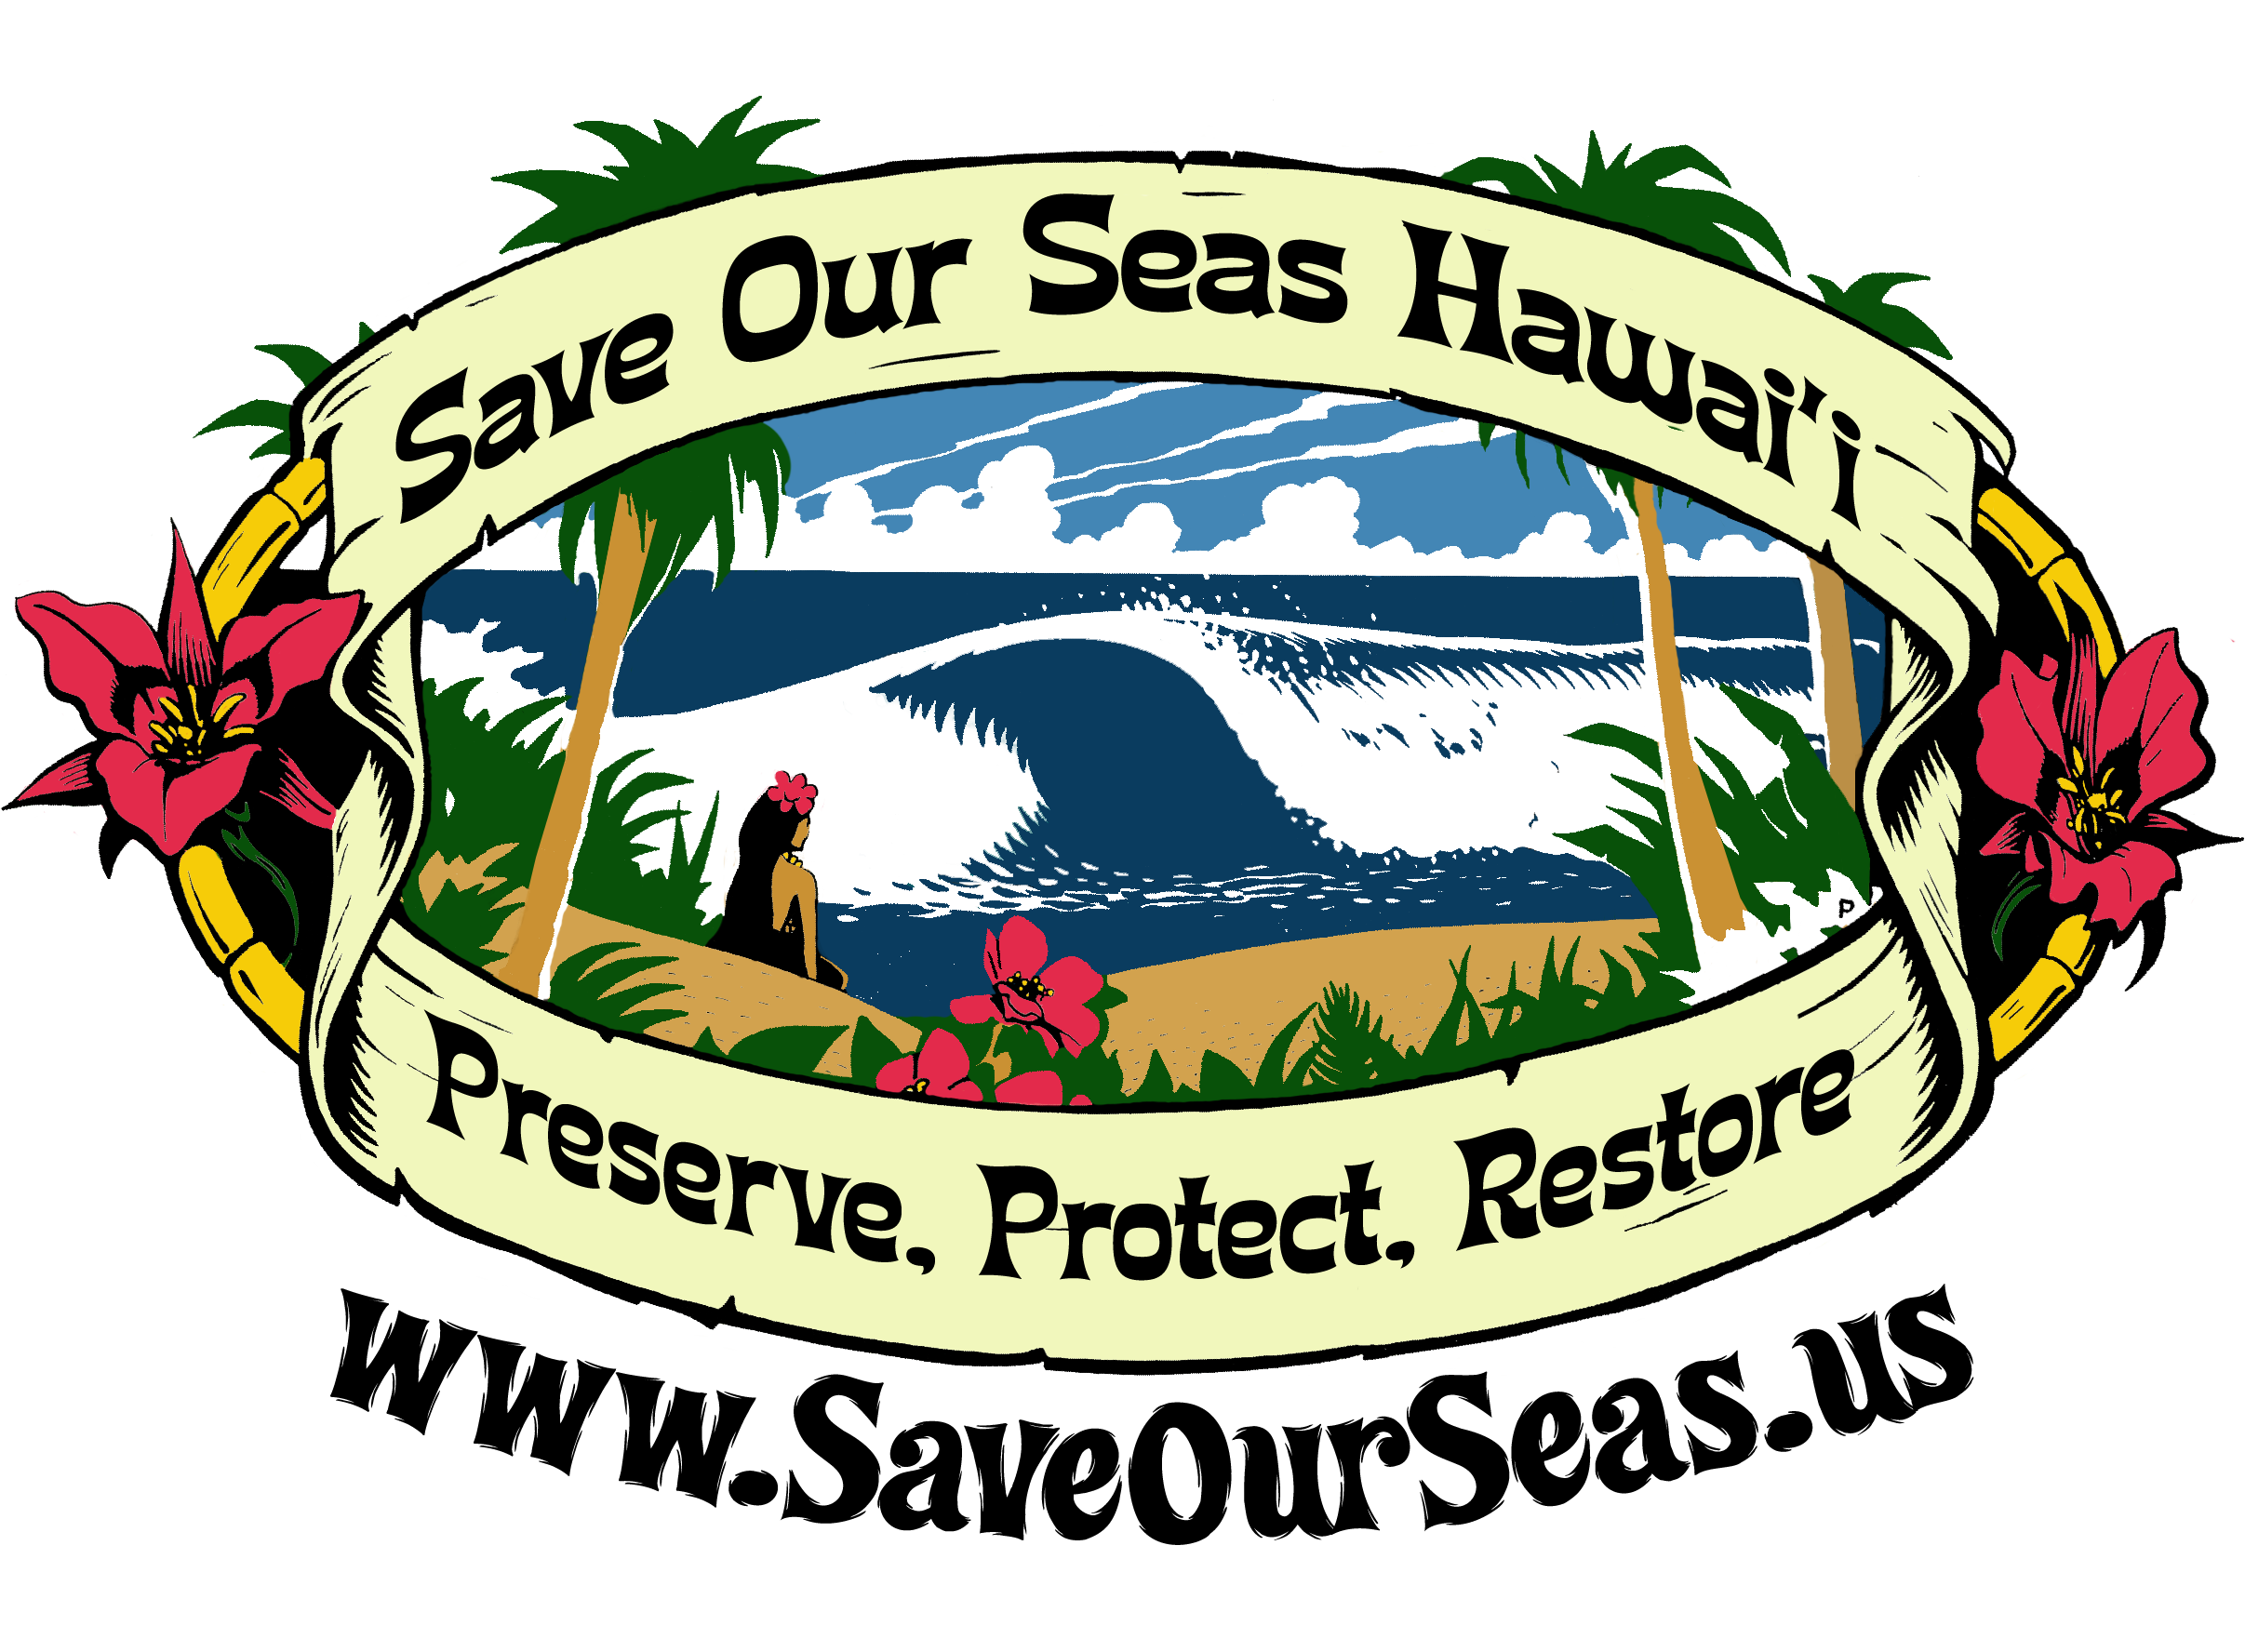 Save our seas hawaii preserve protect restore soshwahine sciox Image collections